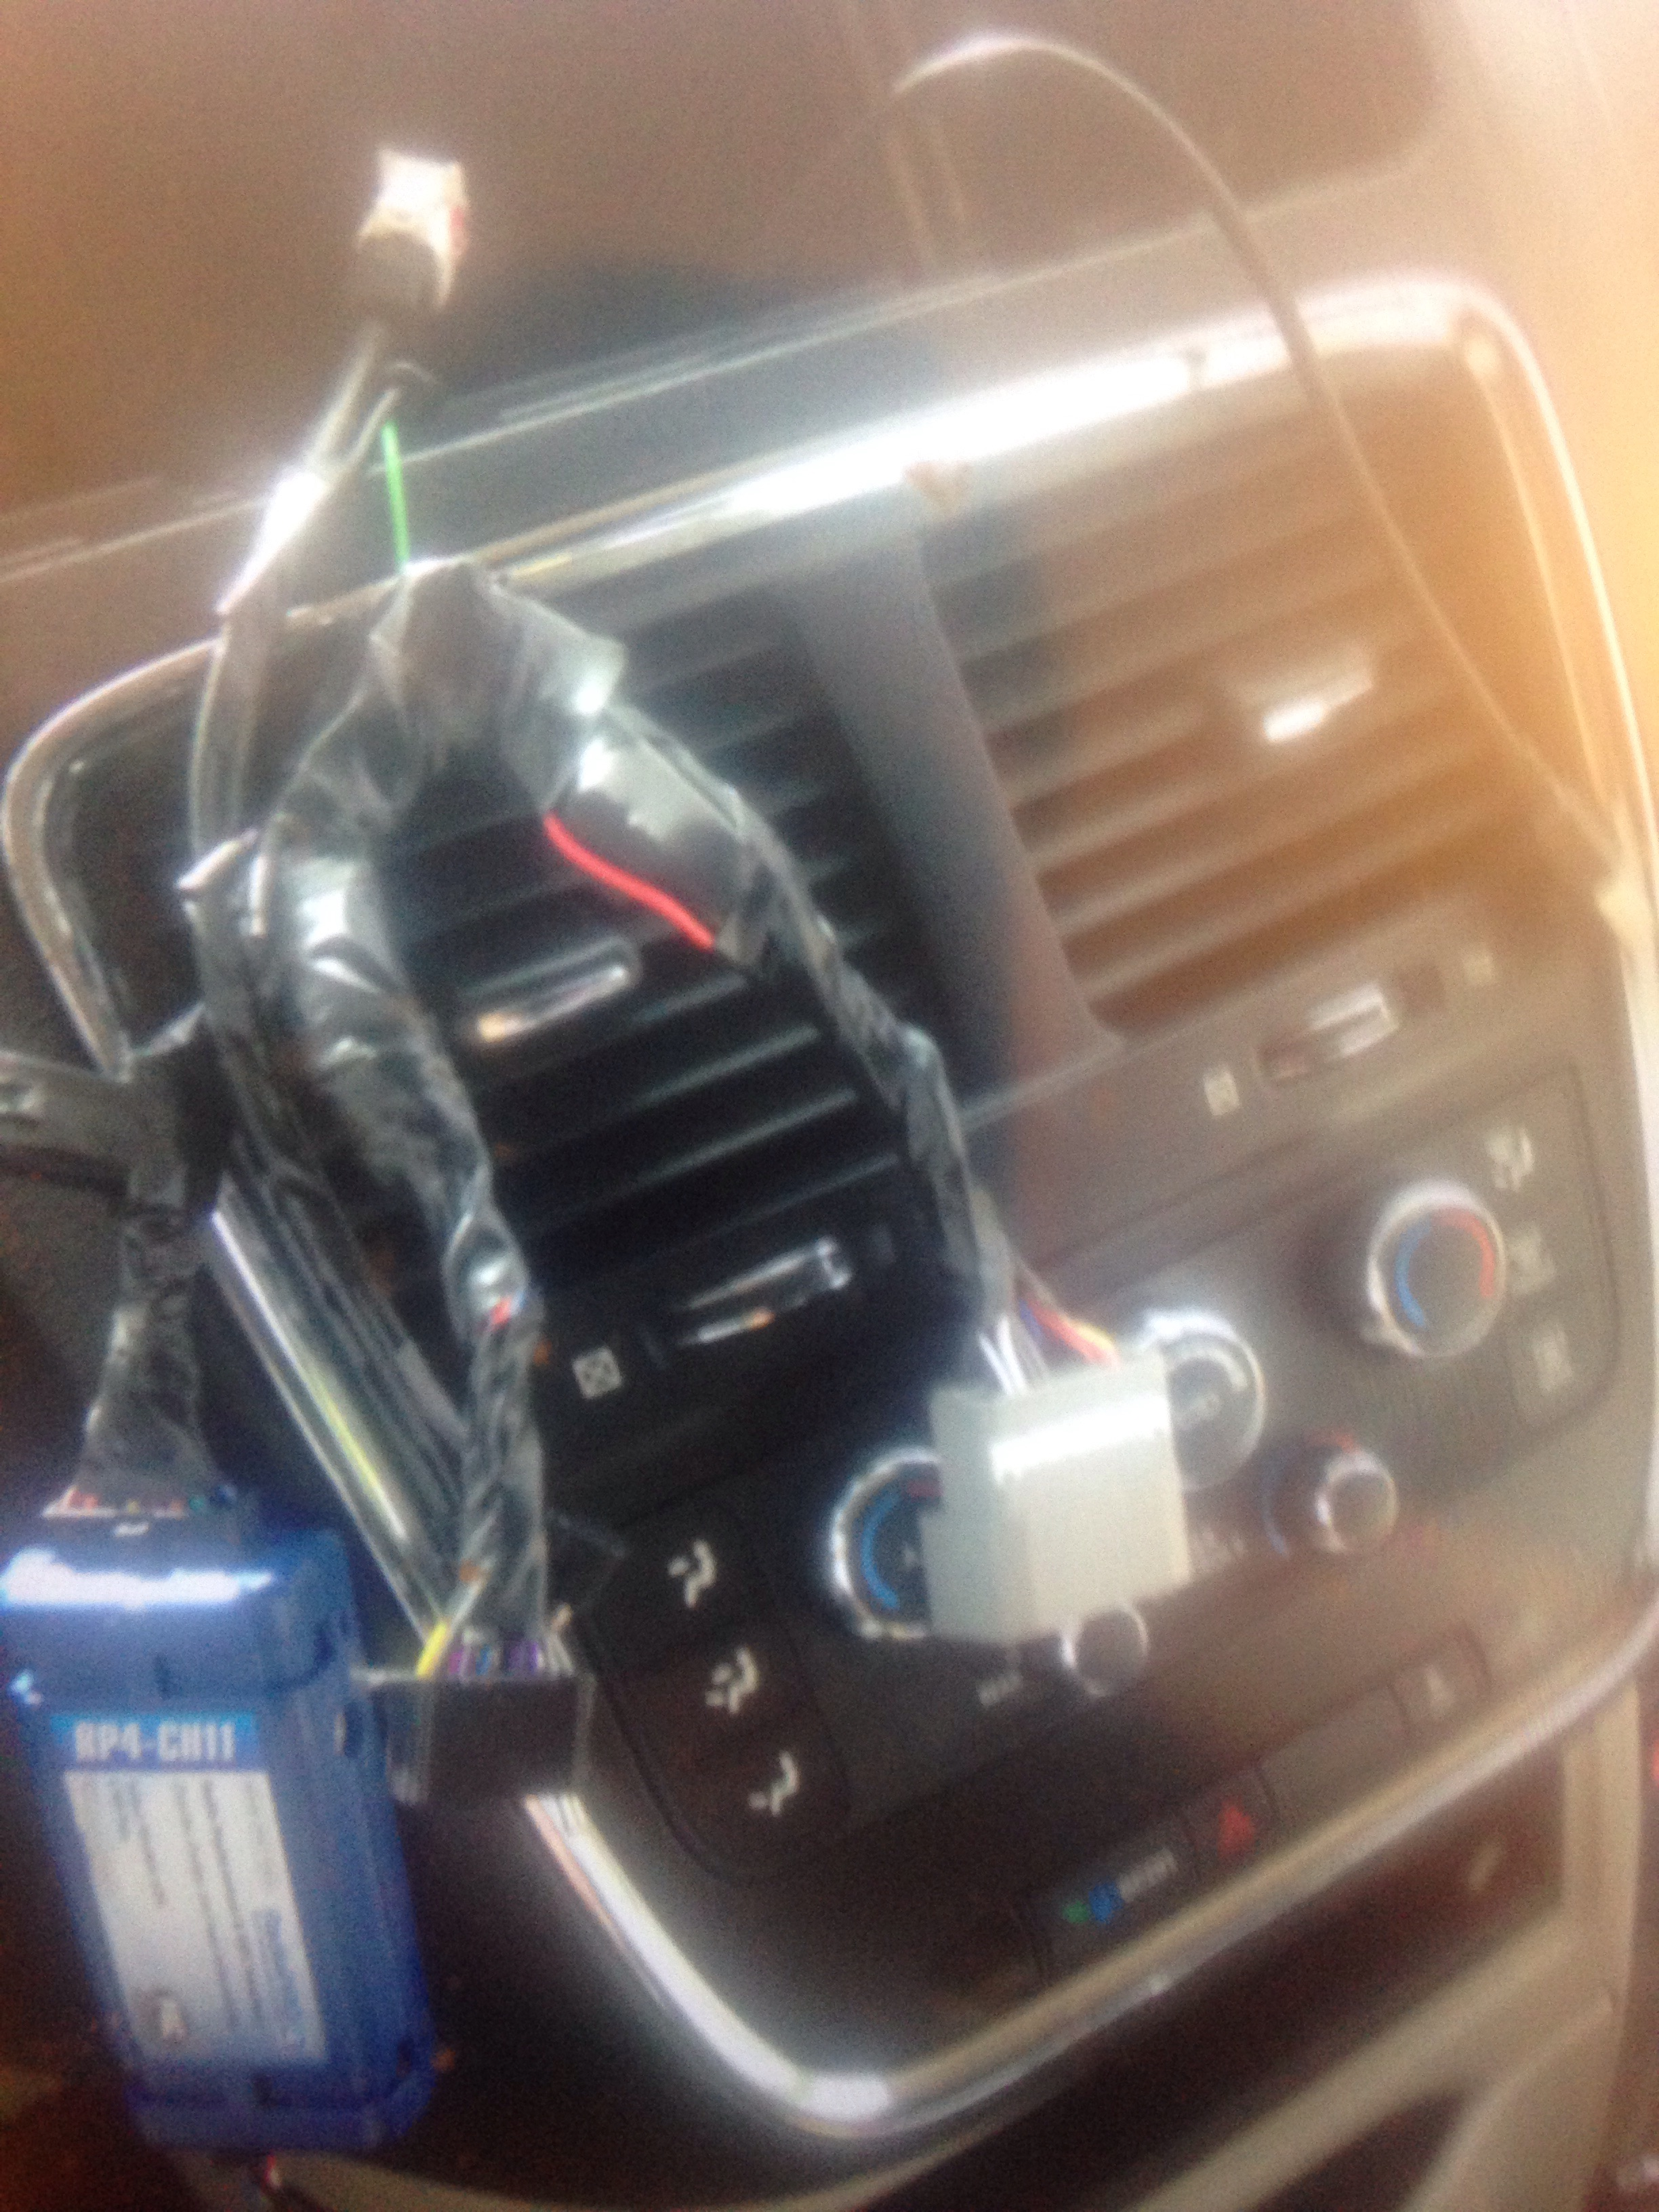 PAC RP4-CH11 Wiring Interface Connect a new car stereo and retain